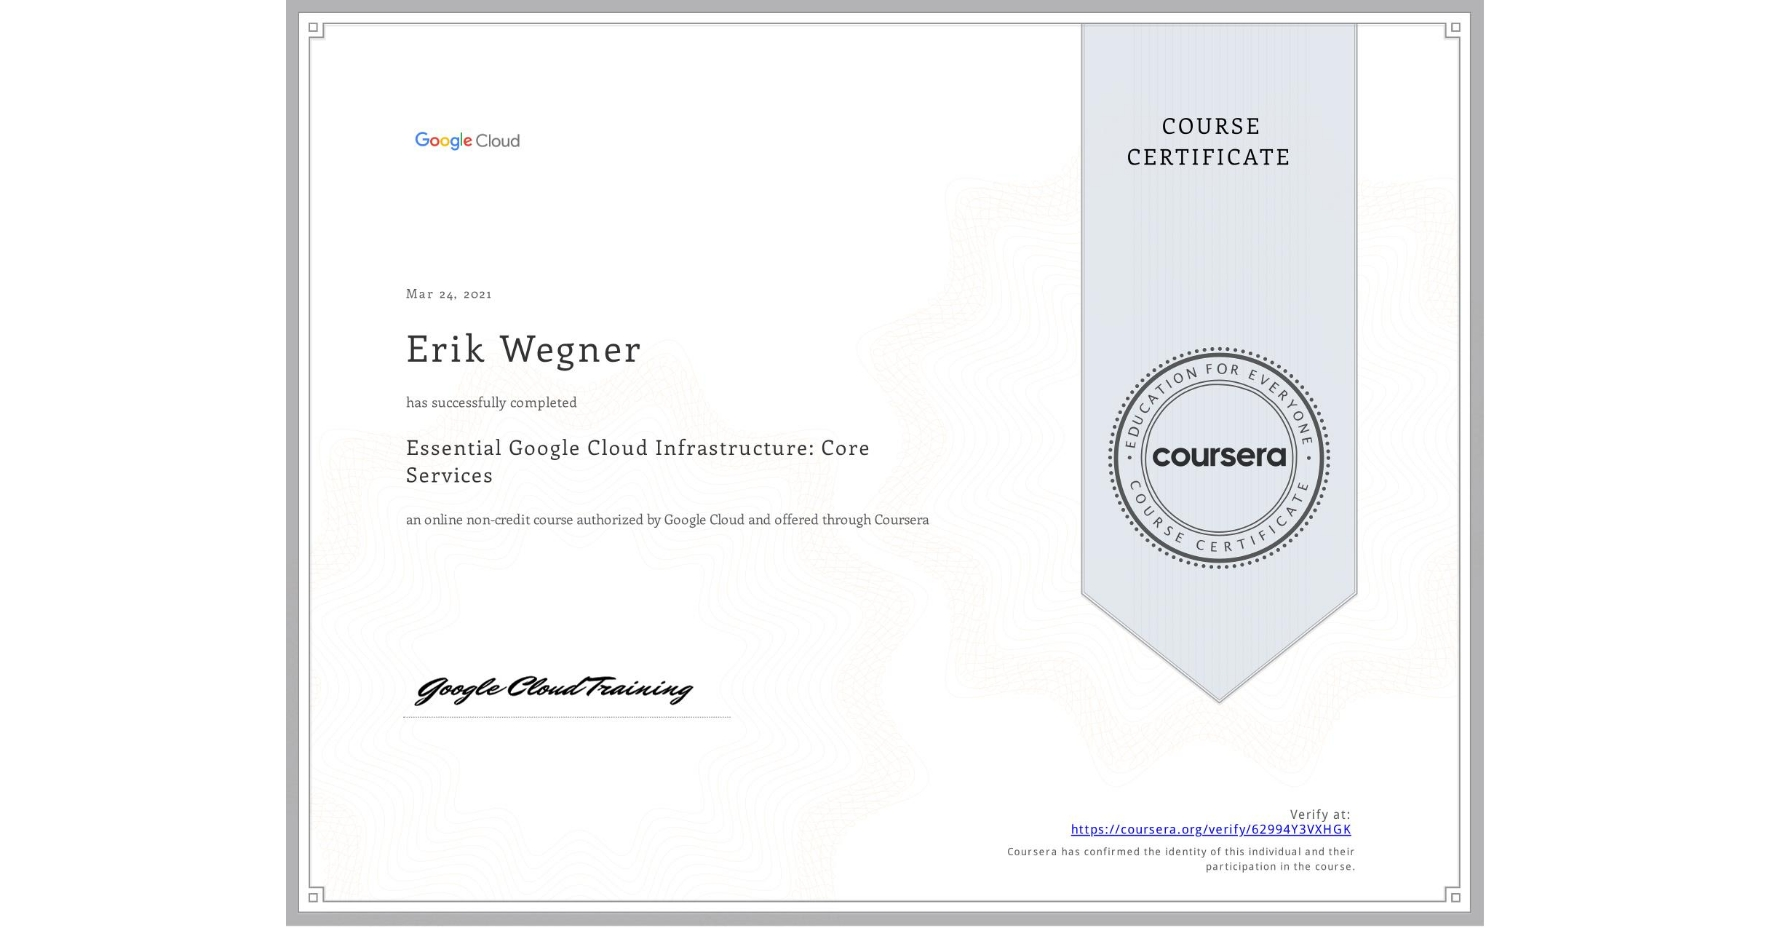 View certificate for Erik Wegner, Essential Google Cloud Infrastructure: Core Services, an online non-credit course authorized by Google Cloud and offered through Coursera